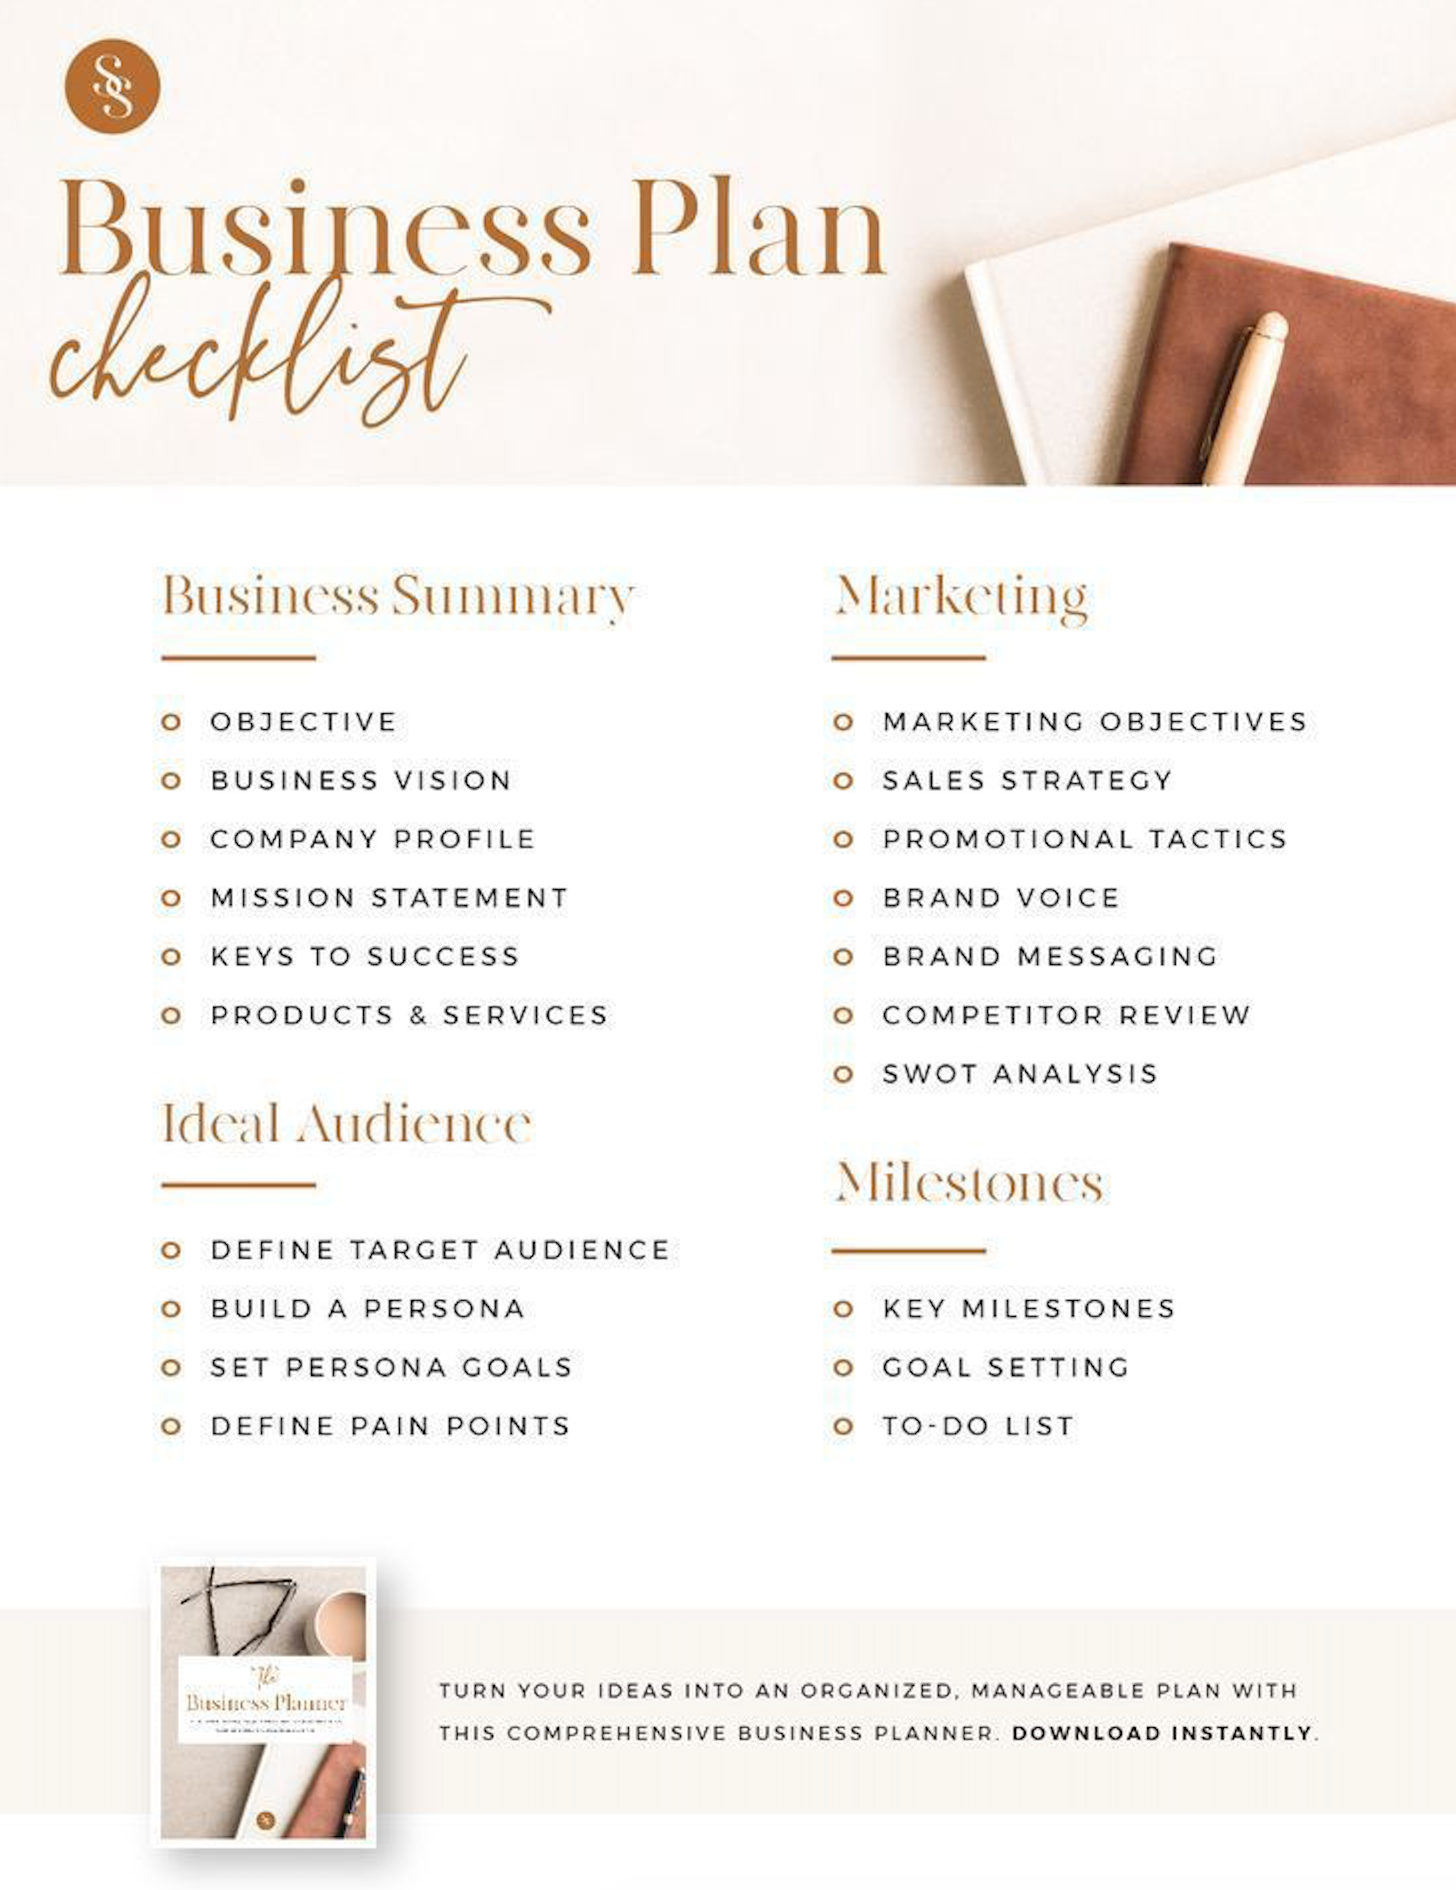 A Business Planner